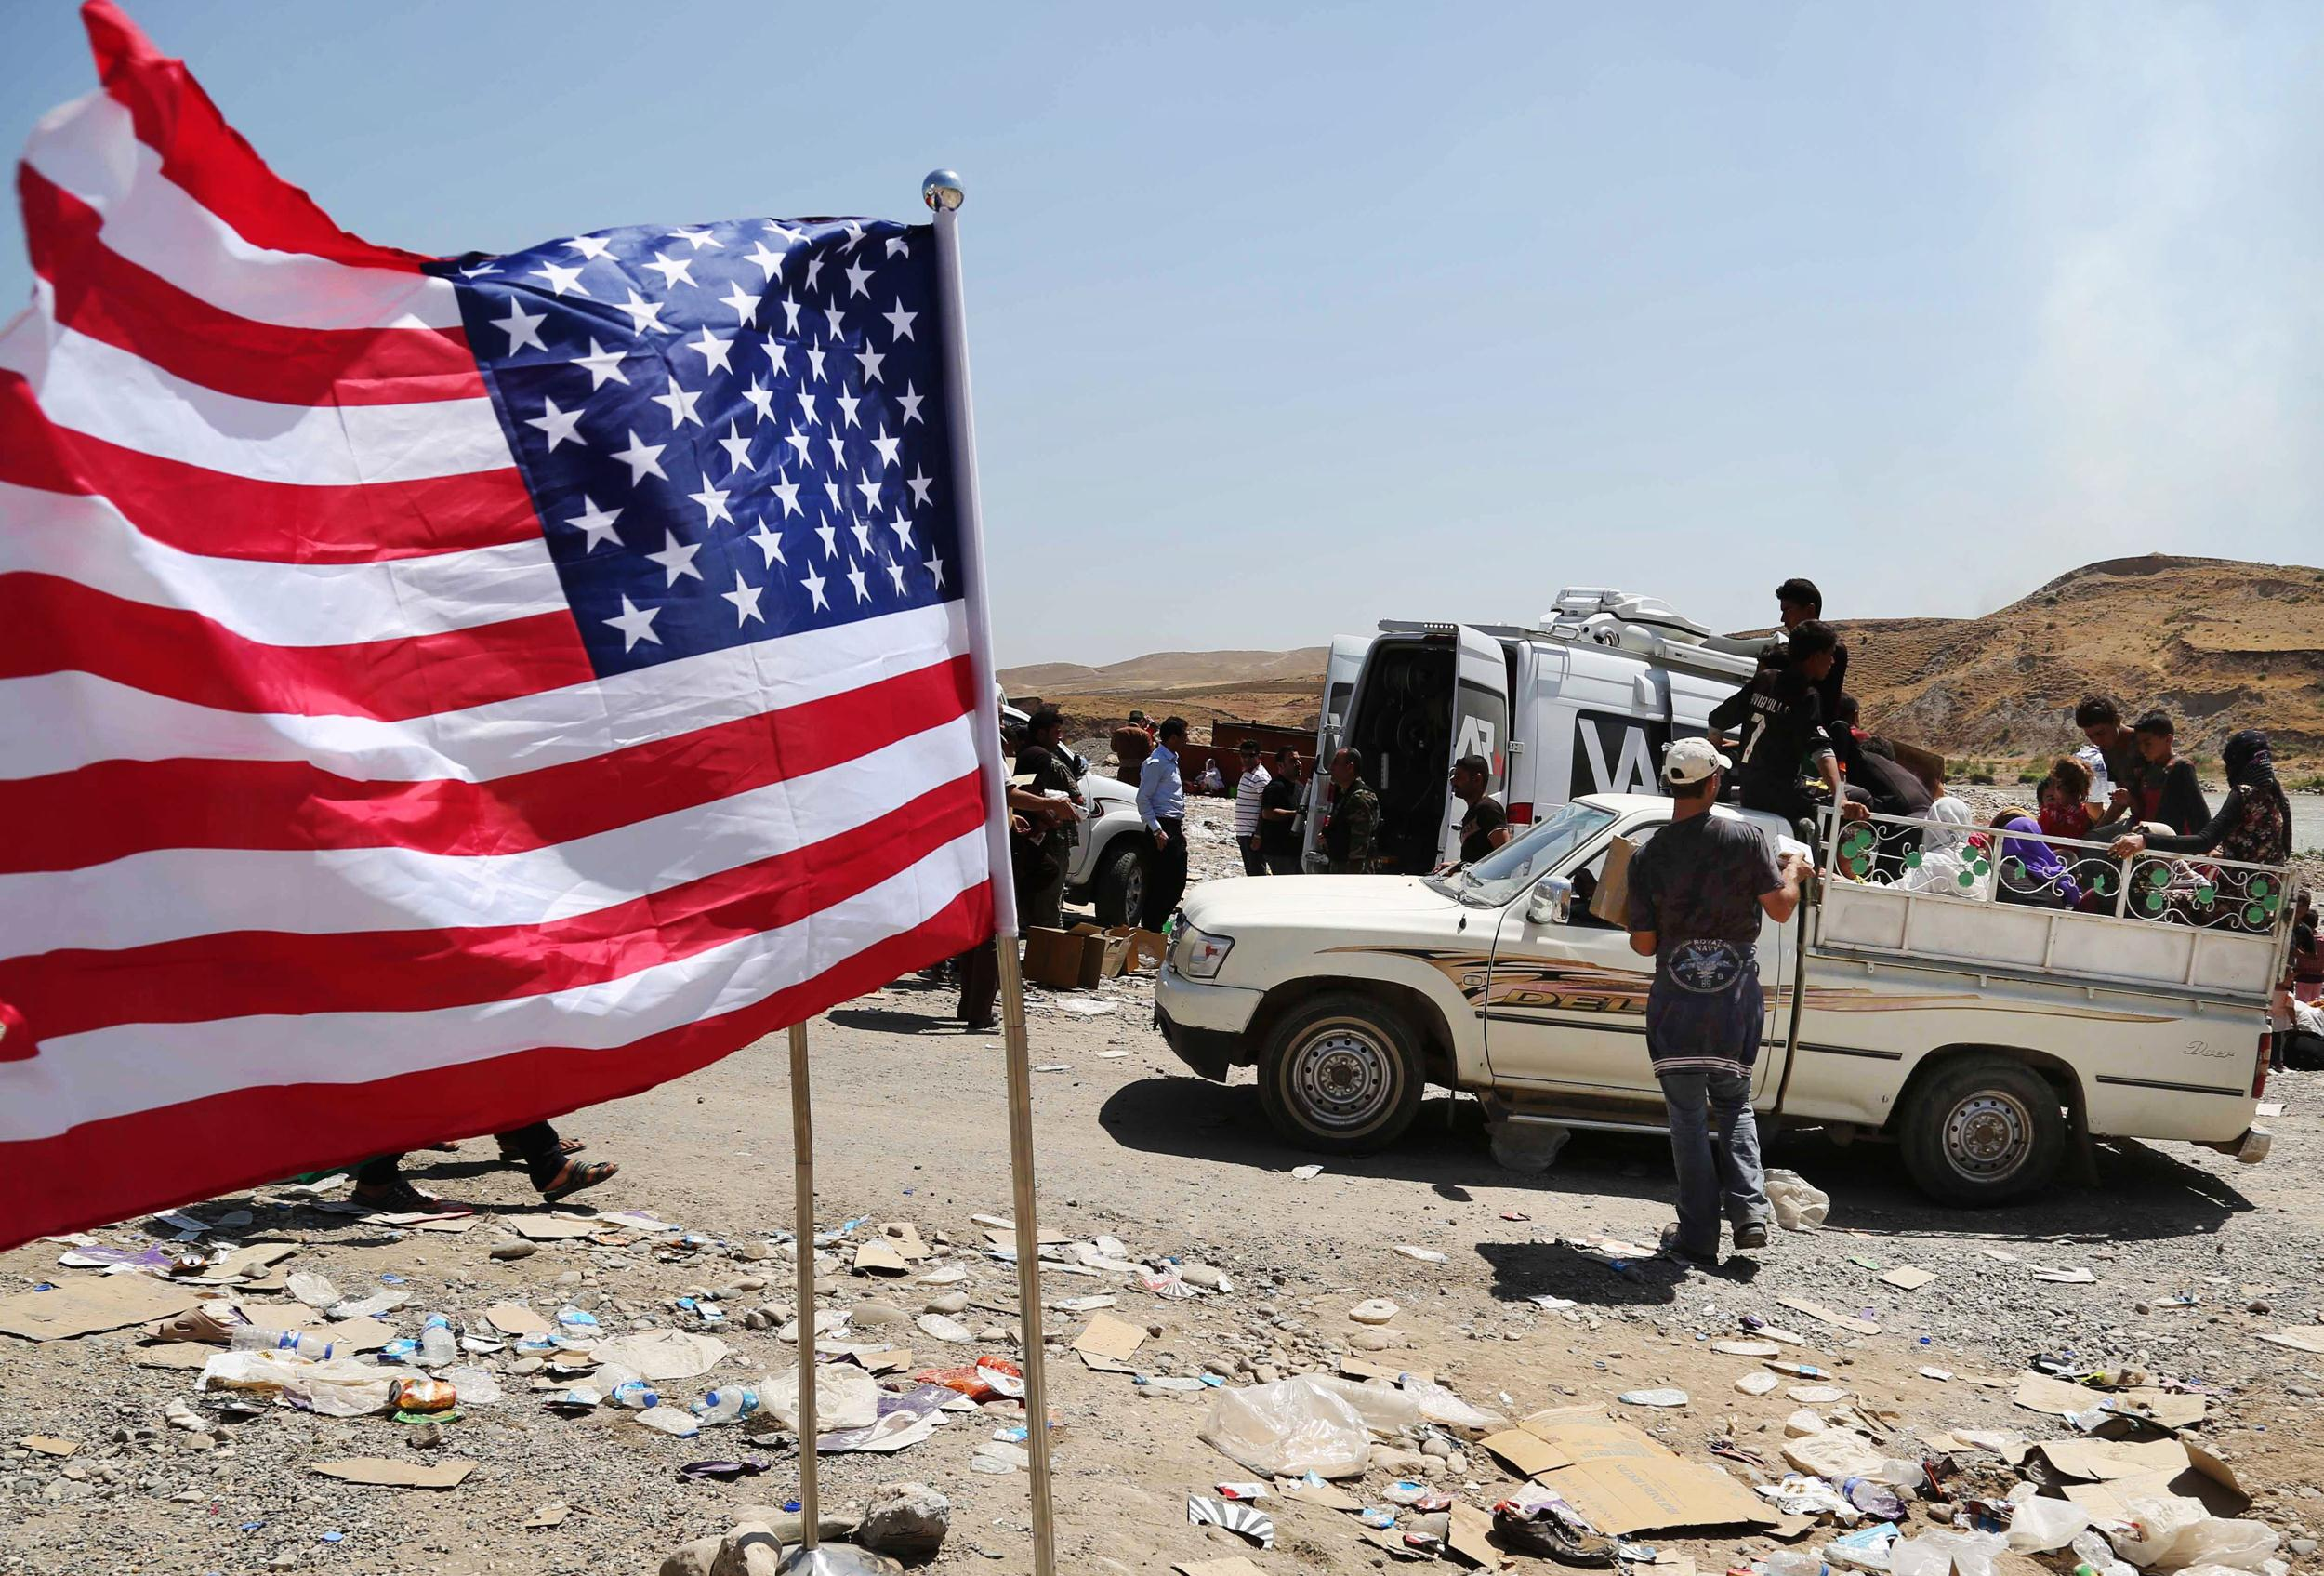 Image: A U.S. flag waves while displaced Iraqis from the Yazidi community cross the Syria-Iraq border